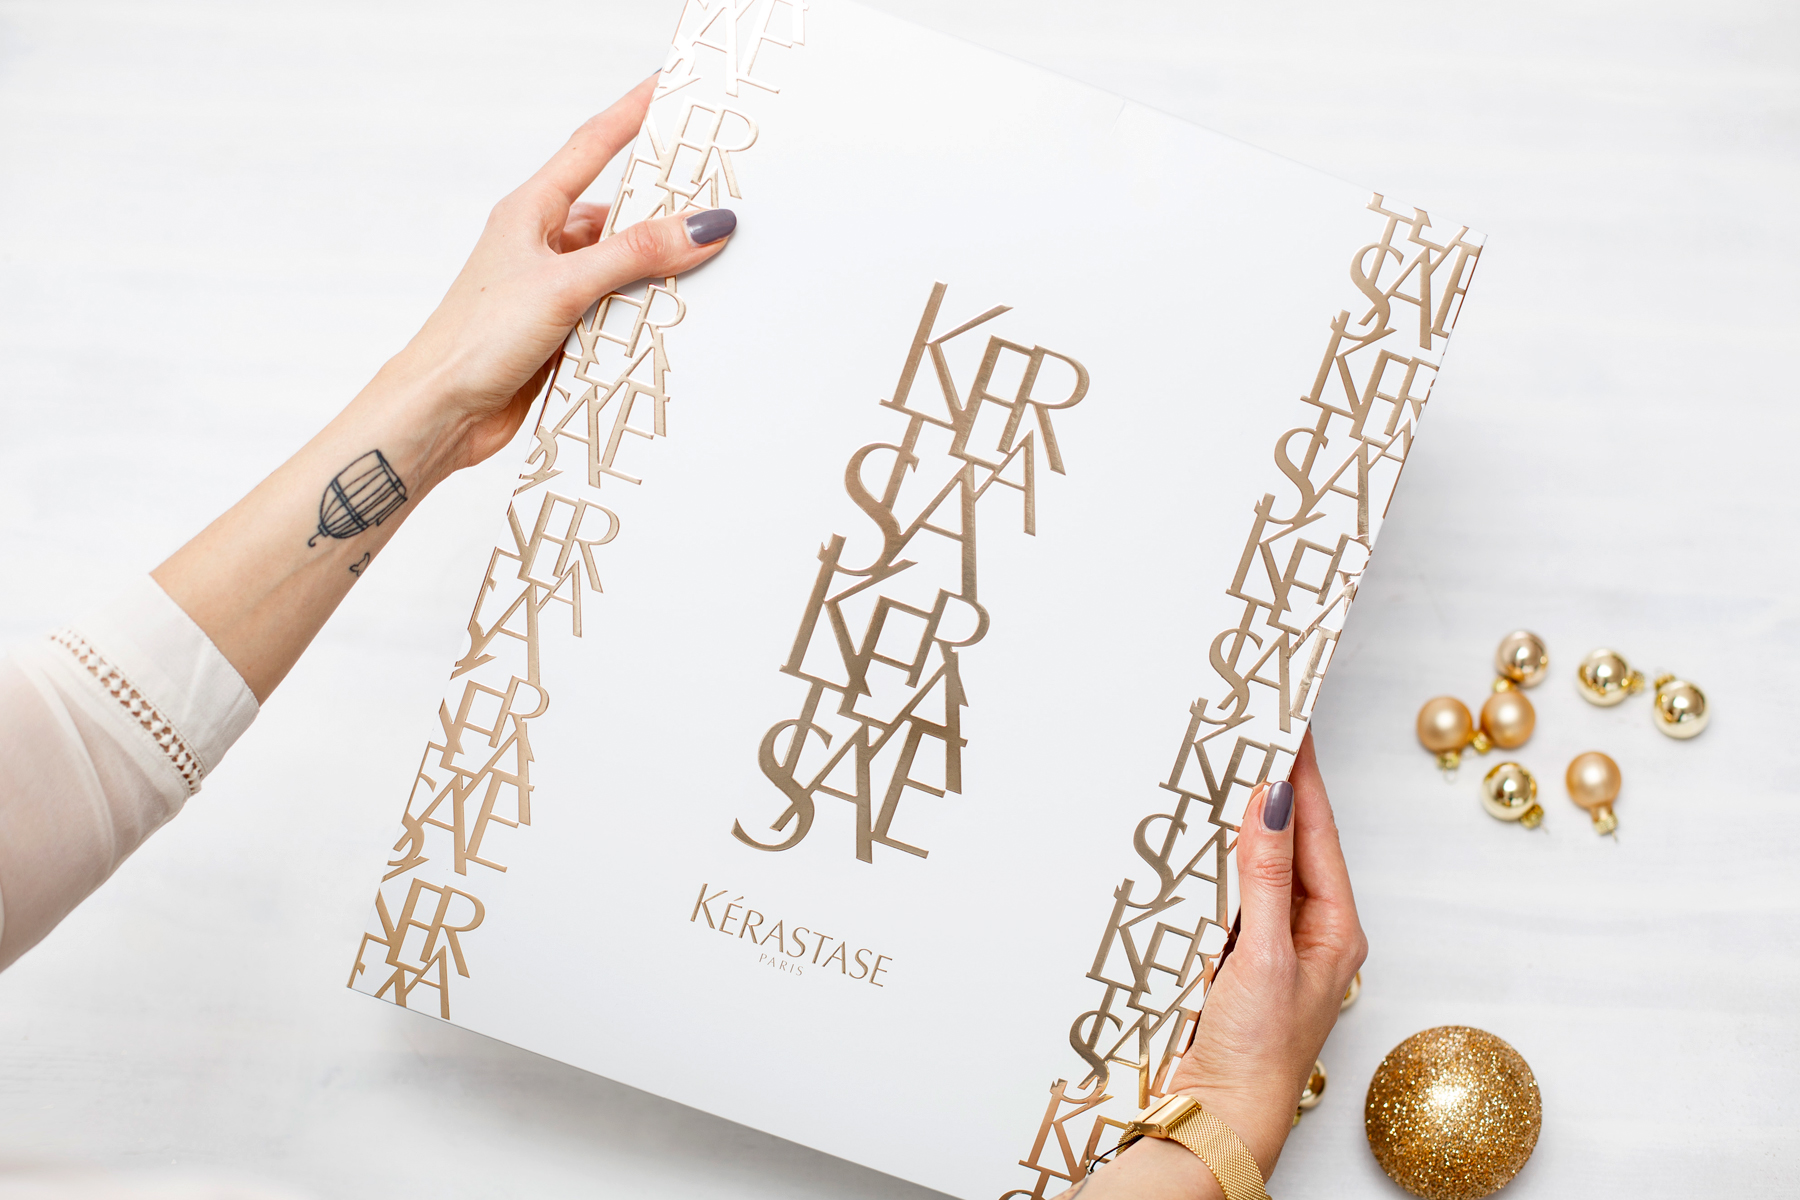 kérastase adventskalender advent calendar golden christmas shiny luxury hair care haircare beautyblogger white christmas winter look beautiful glamorous geschenk gift cats & dogs fashionblog ricarda schernus beauty blogger 4